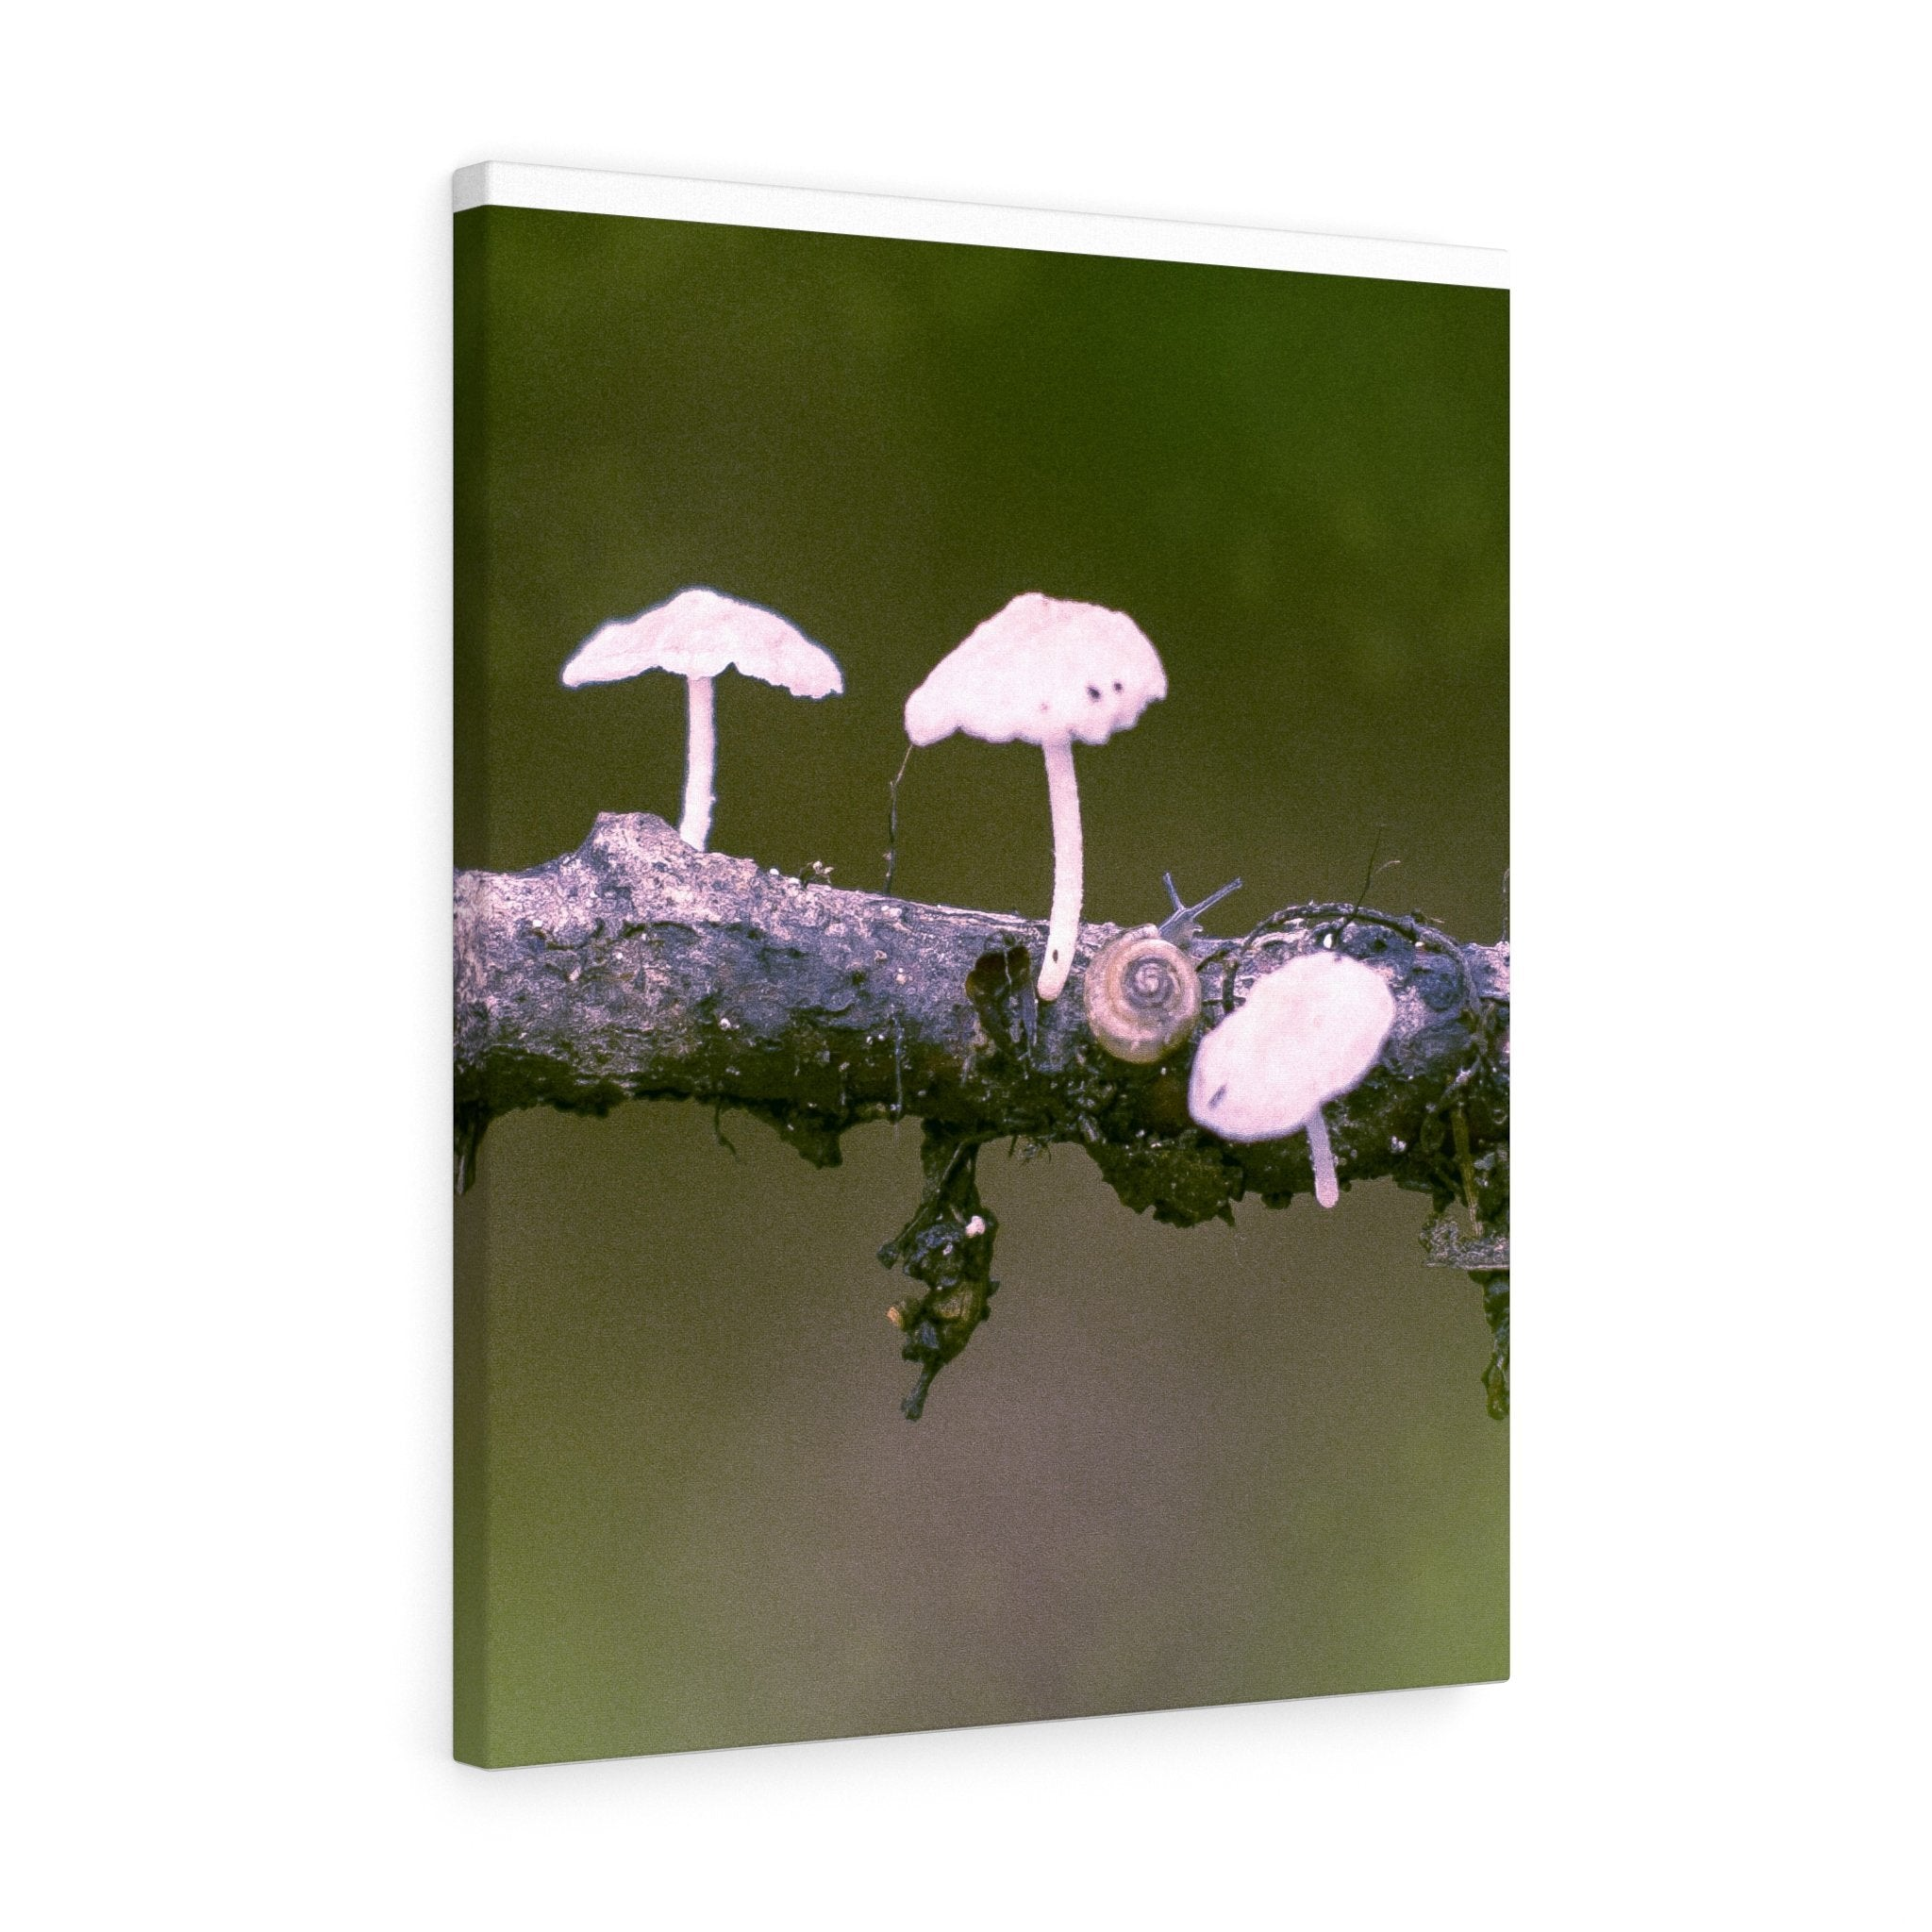 Snail on a Log Stretched canvas 24″ × 30″ / Stretched Canvas (1.5